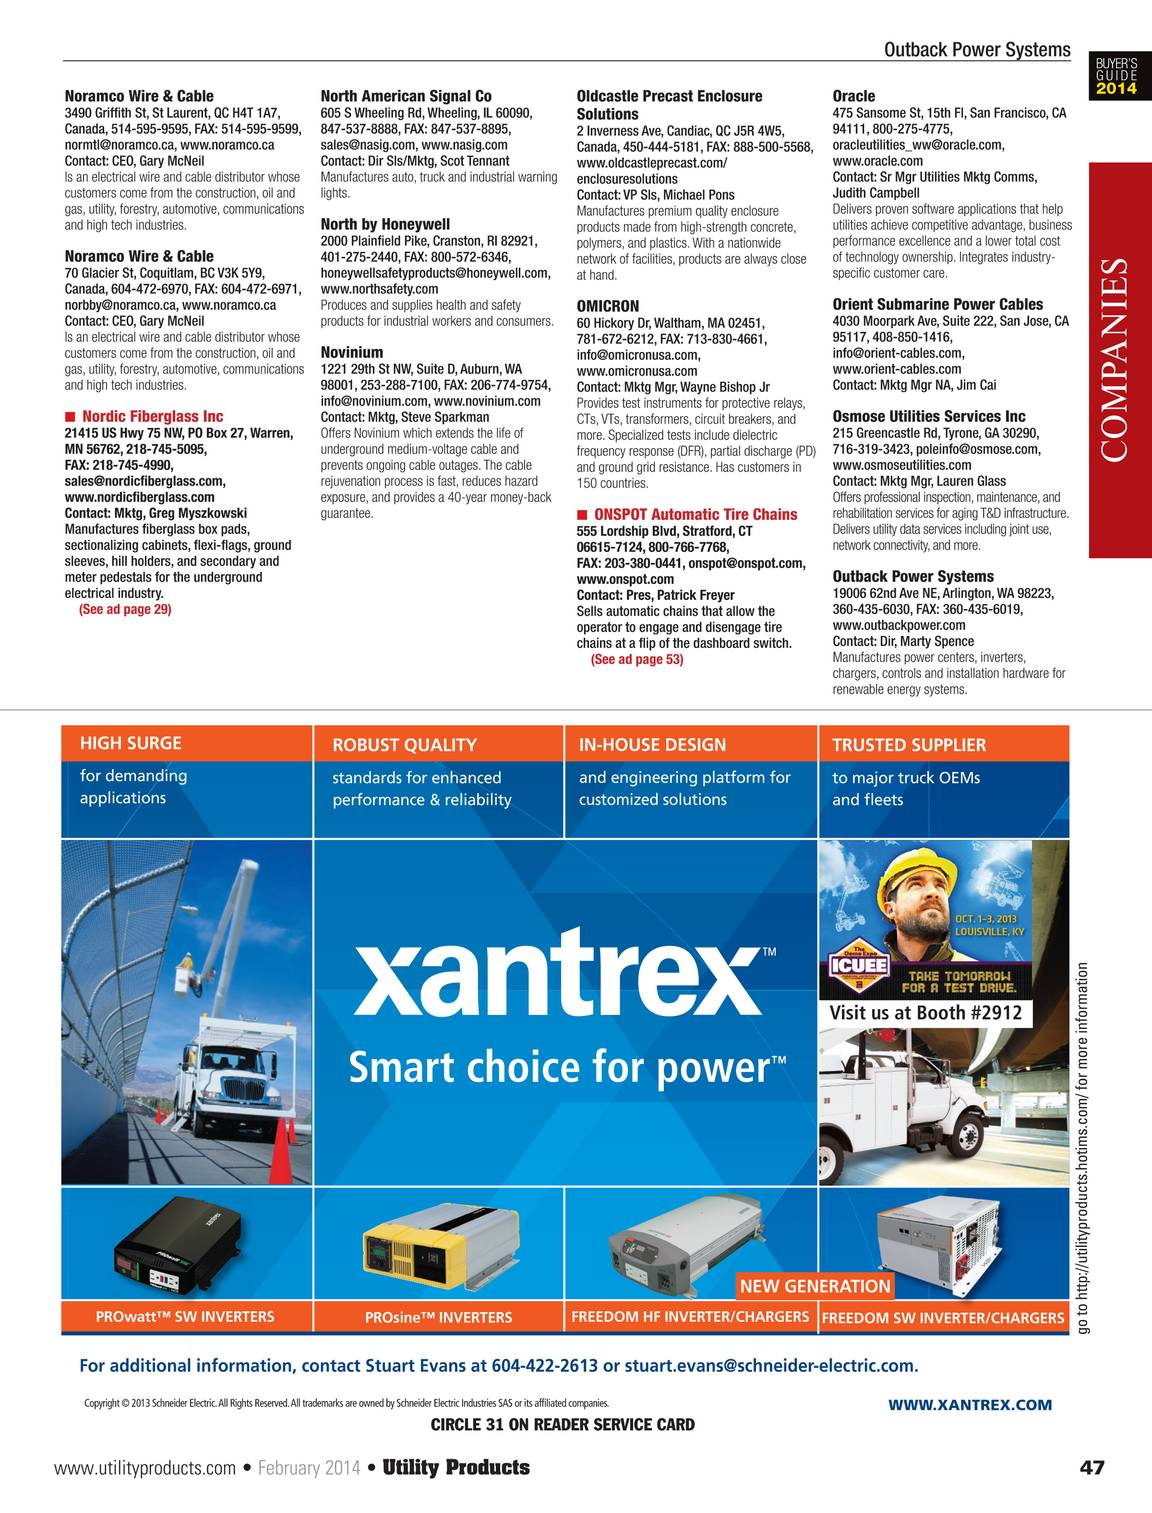 Utility Products - February 2014 - page 48